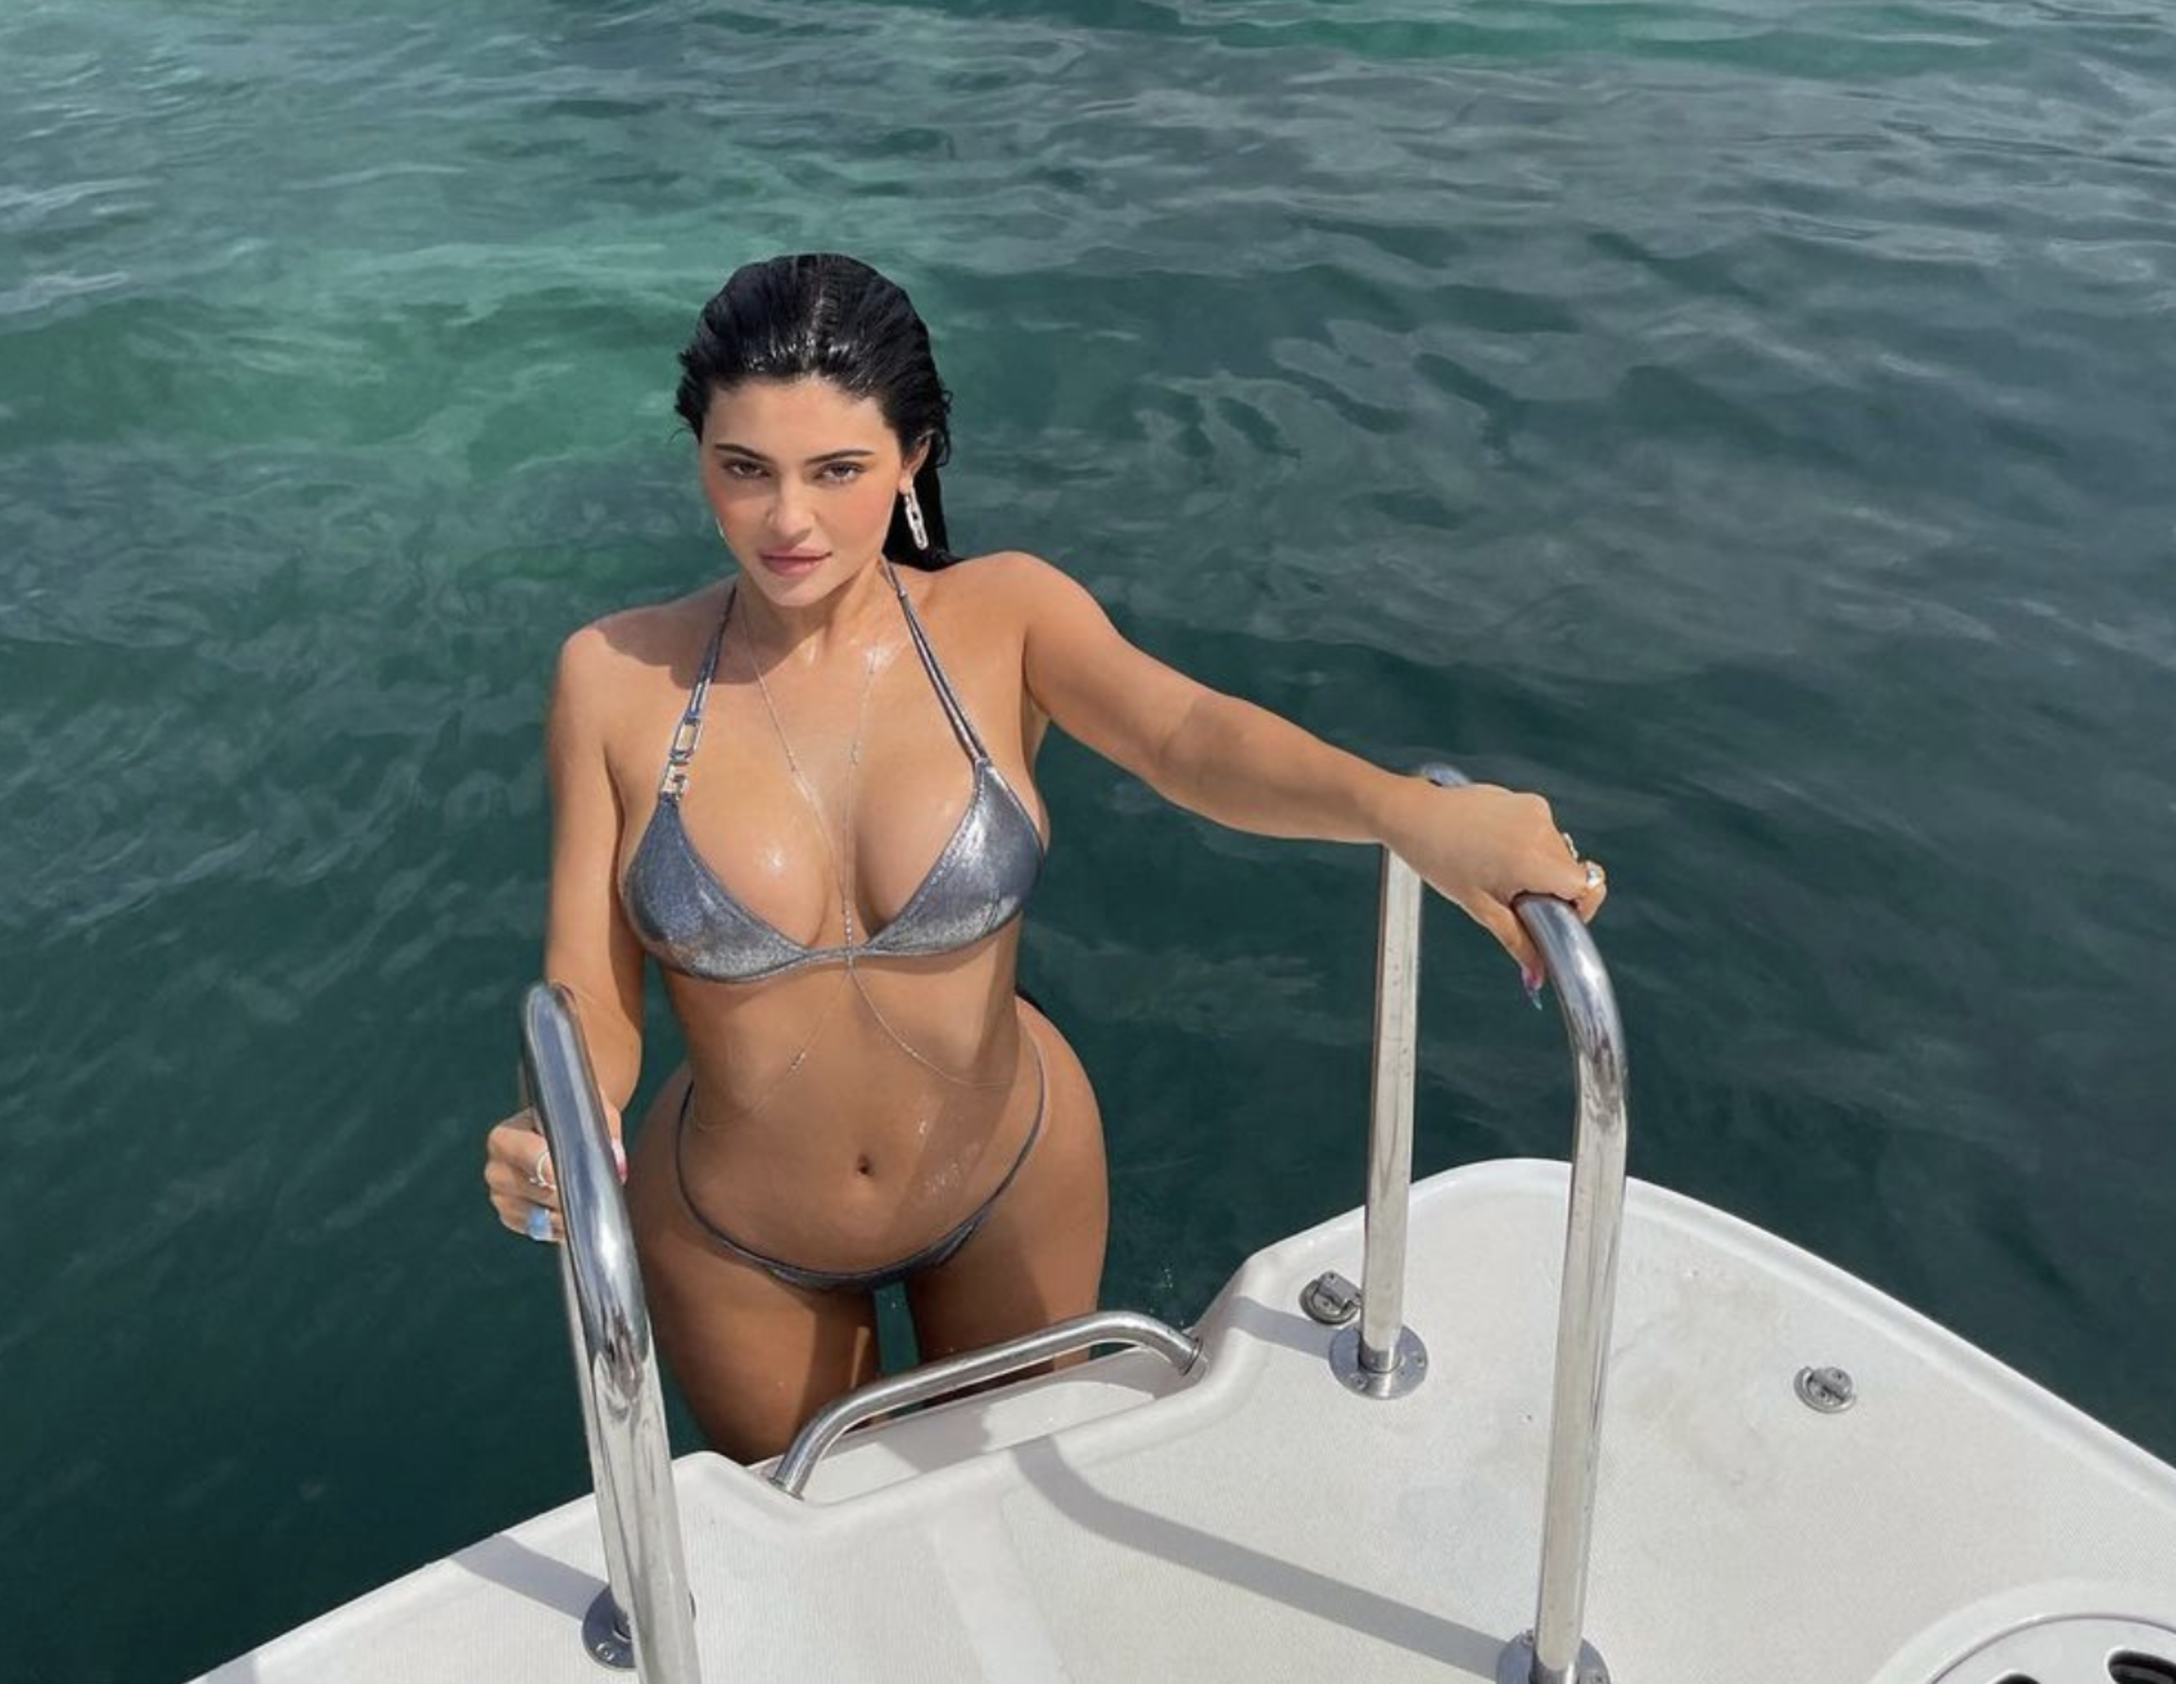 20 Celebrity Vacation Pics That Give Us Total FOMO